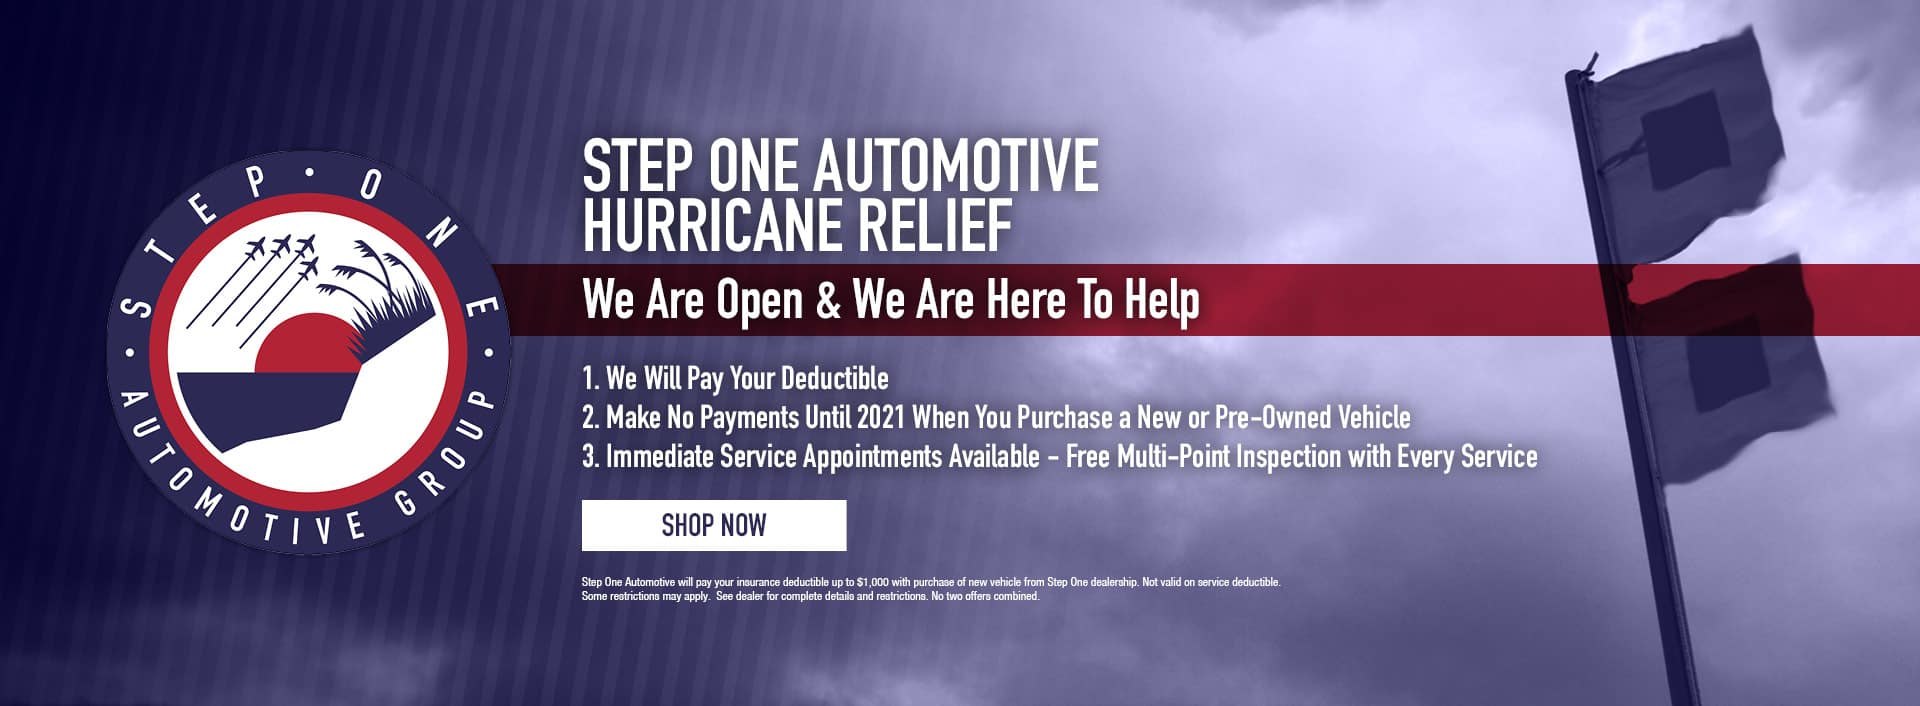 Step One Hurricane Relief